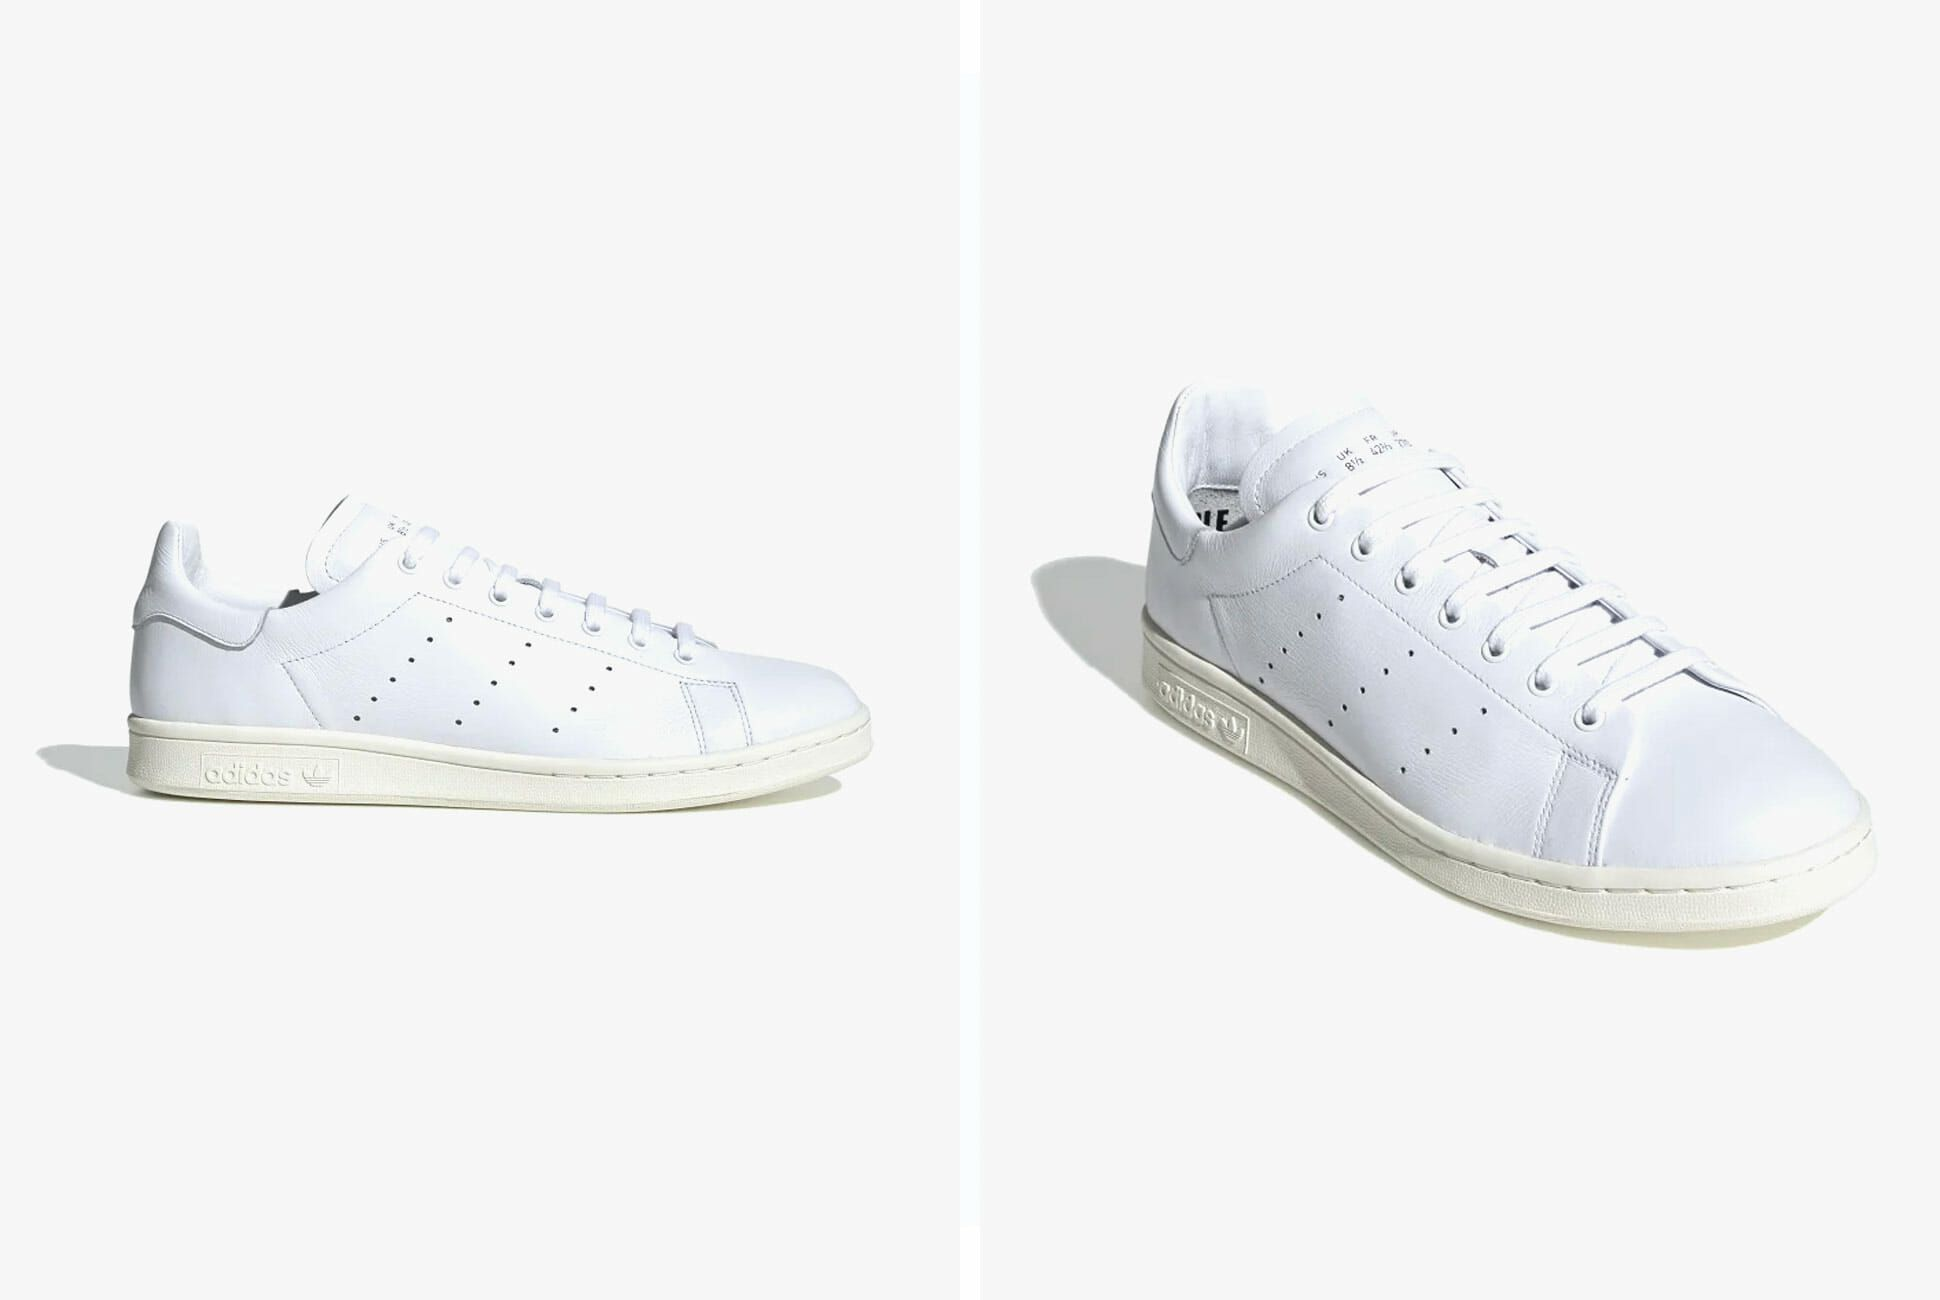 These Iconic Adidas Sneakers Got the Update We've Wanted